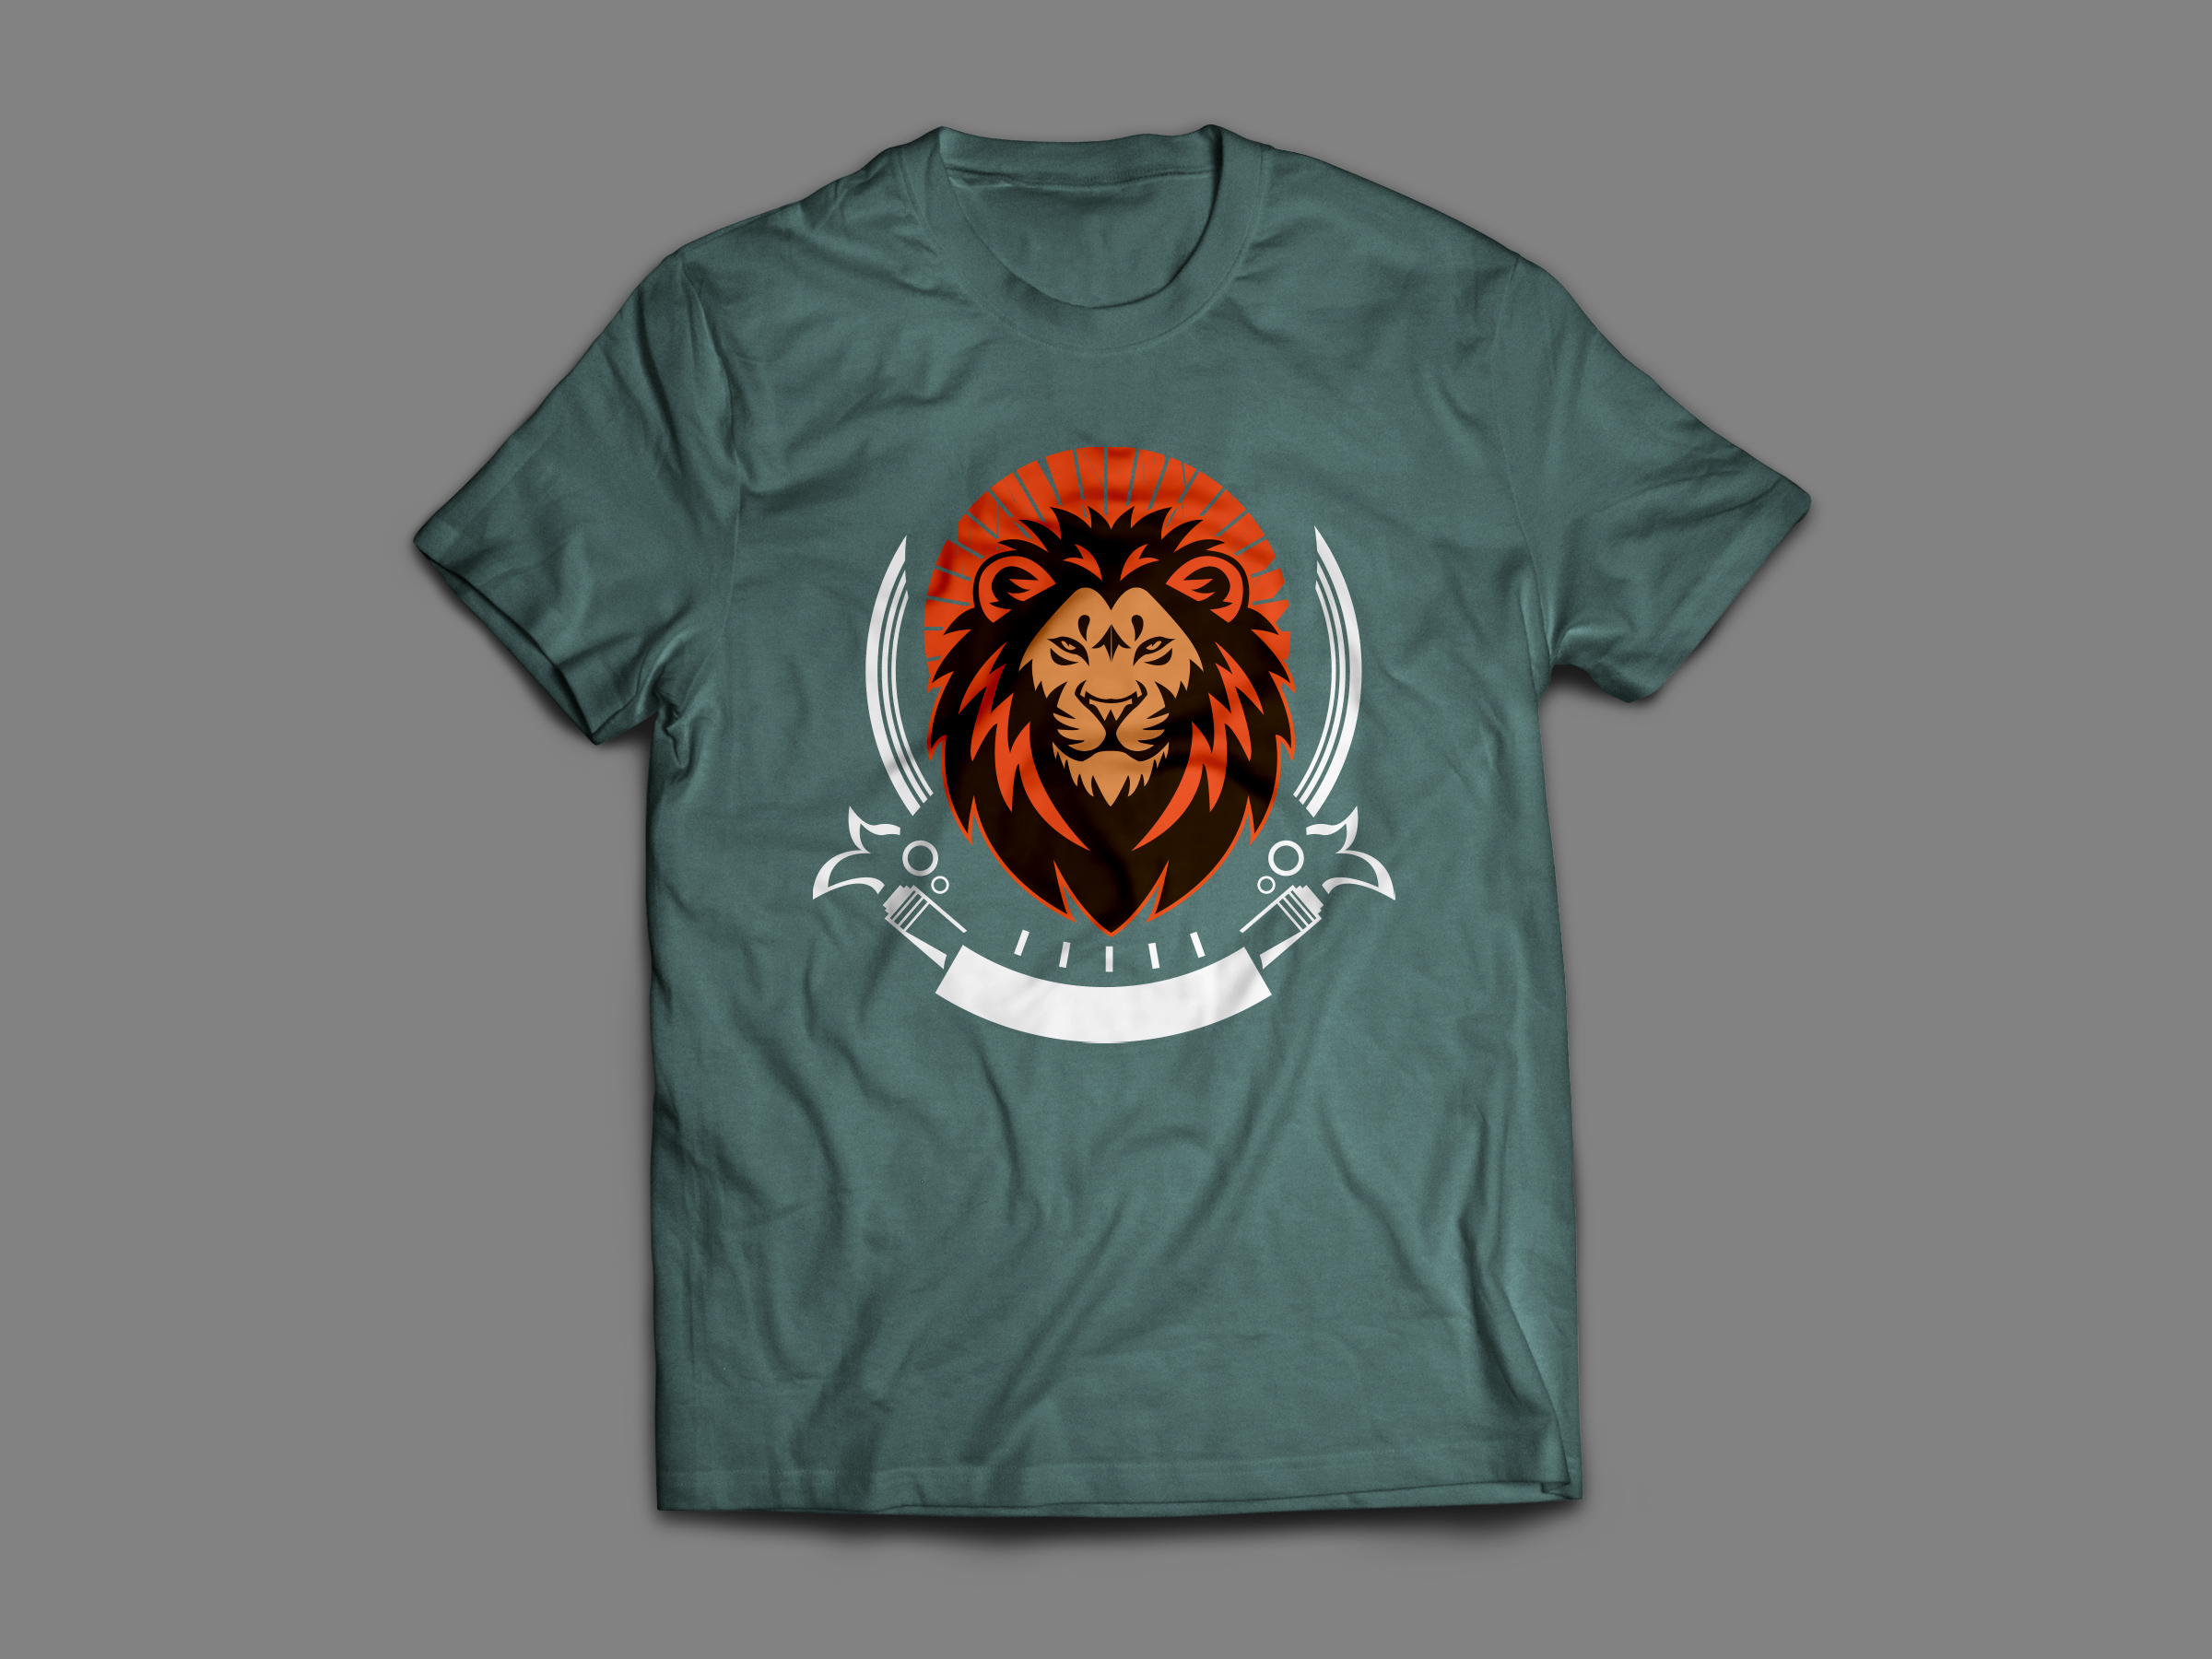 I will eye caching tshirt design use embroidery or print